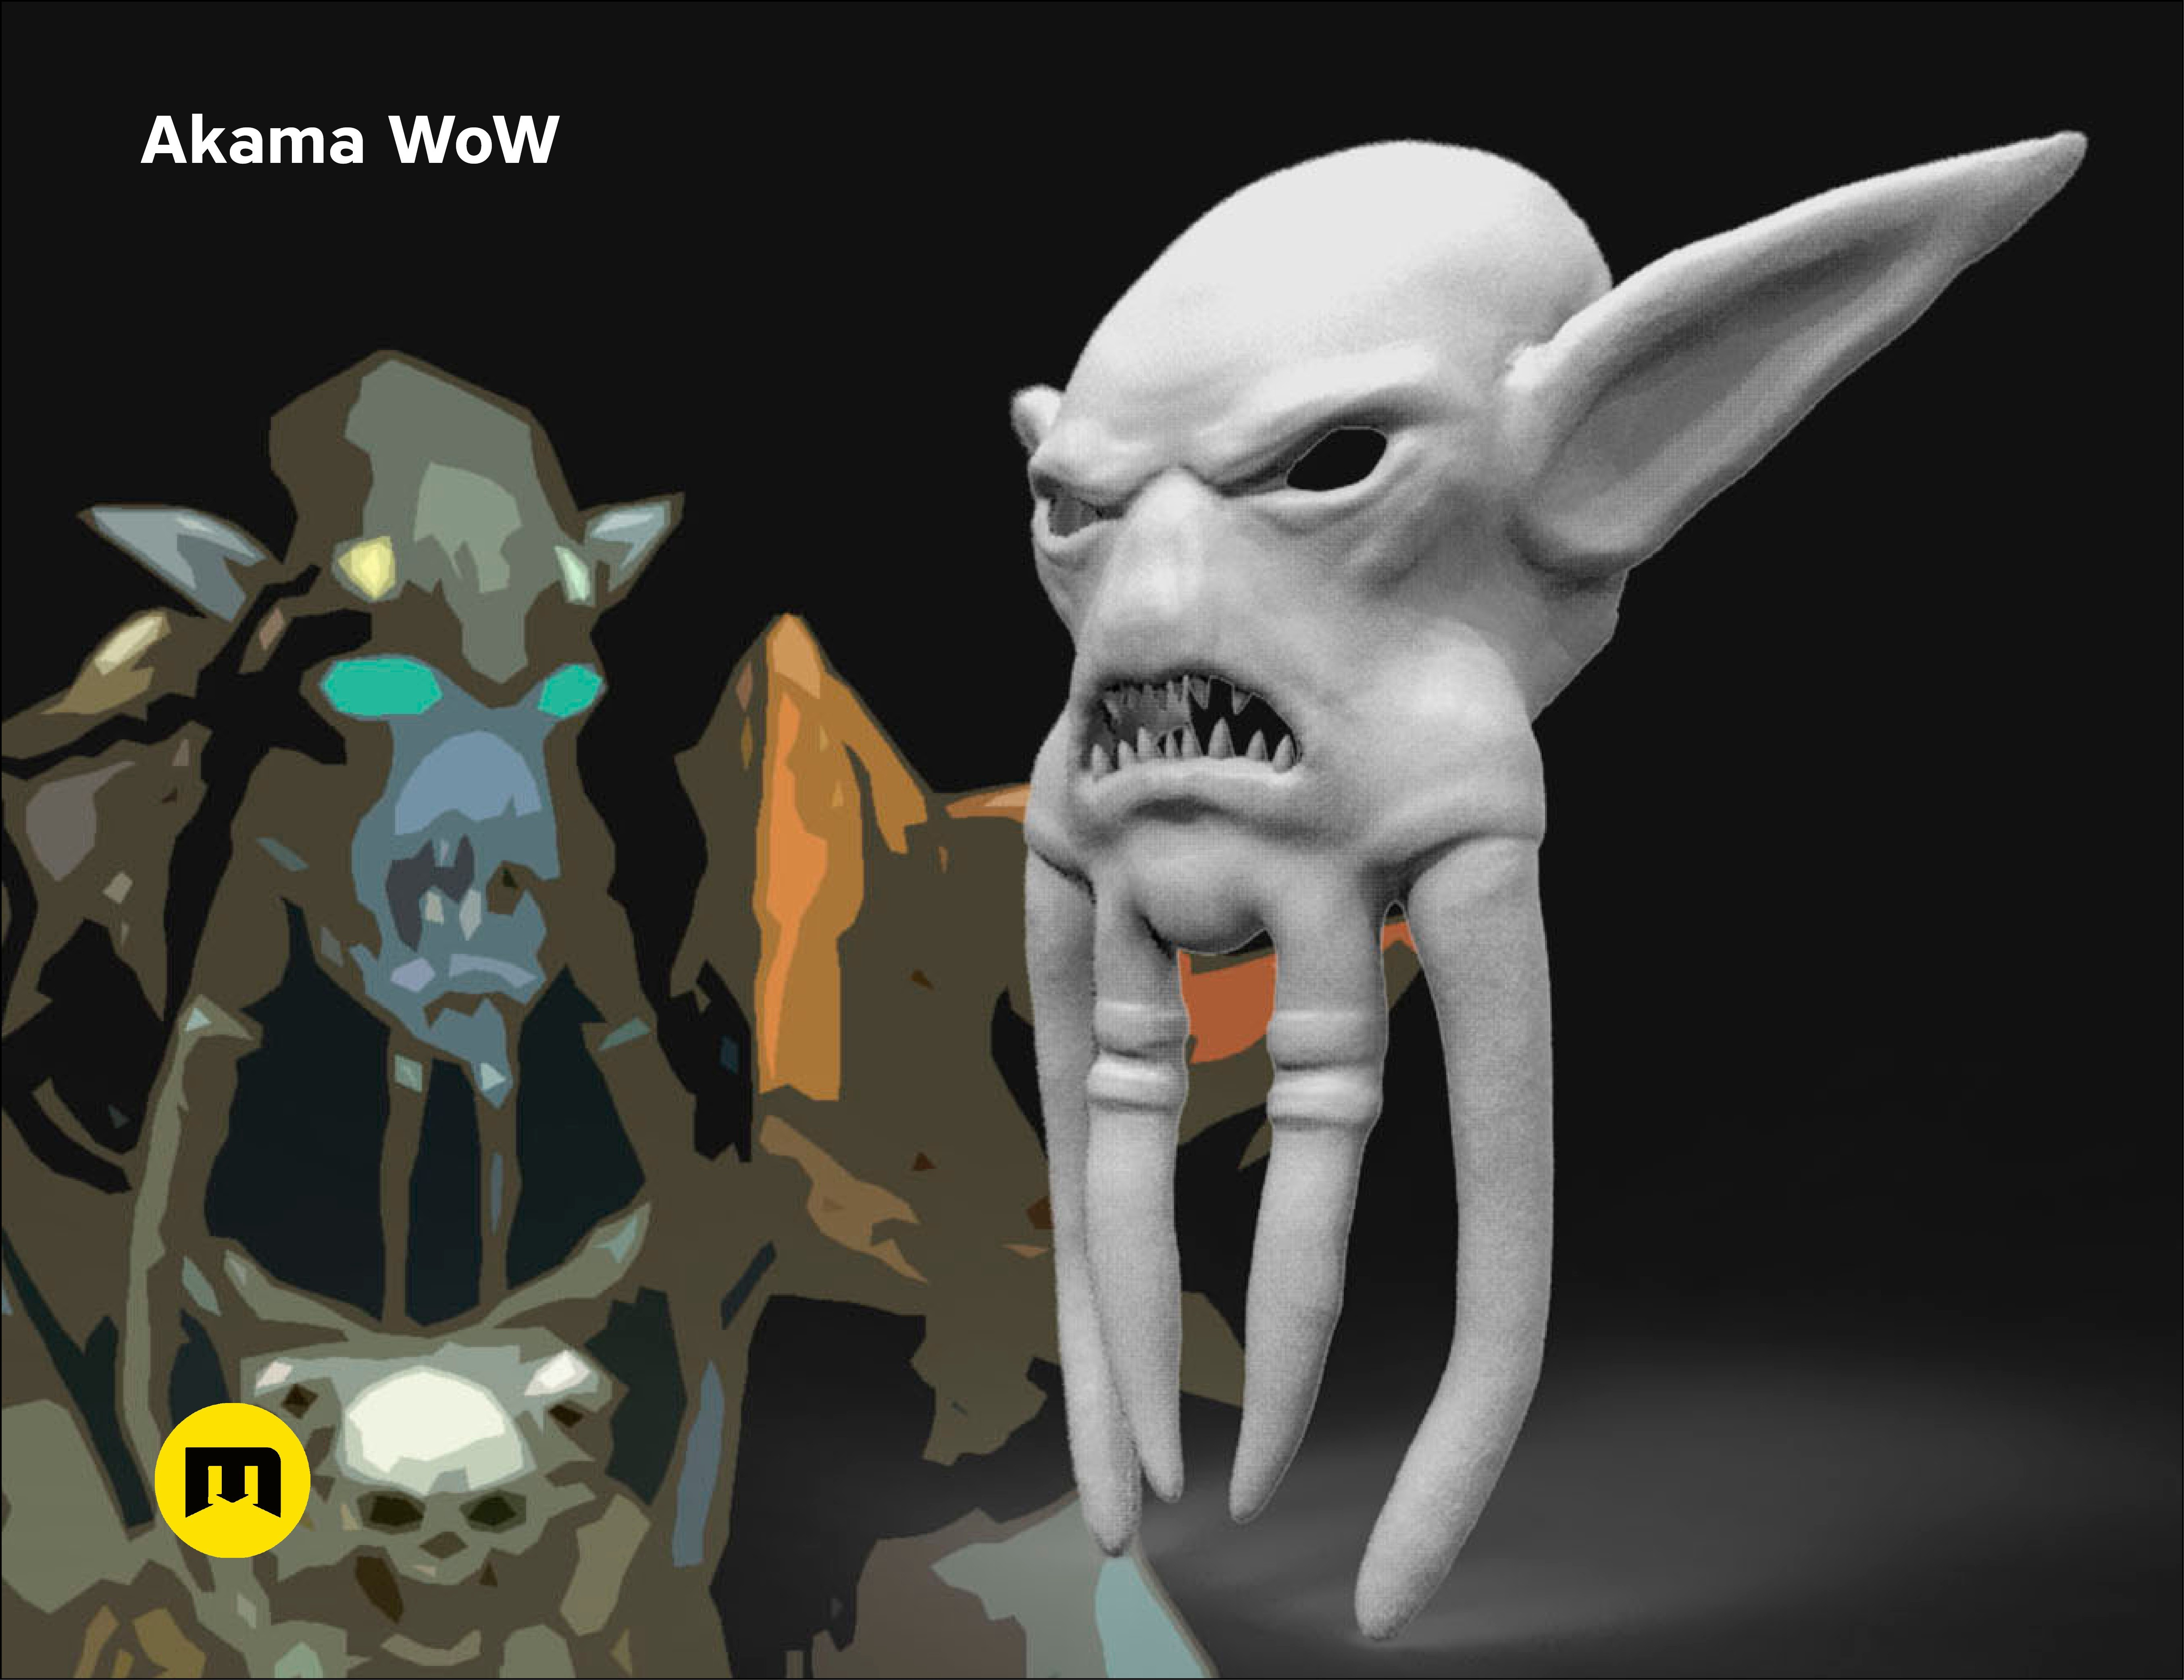 CGTrader_akama.jpg Download STL file Mask of Akama's face from World of Warcraft • Model to 3D print, 3D-mon